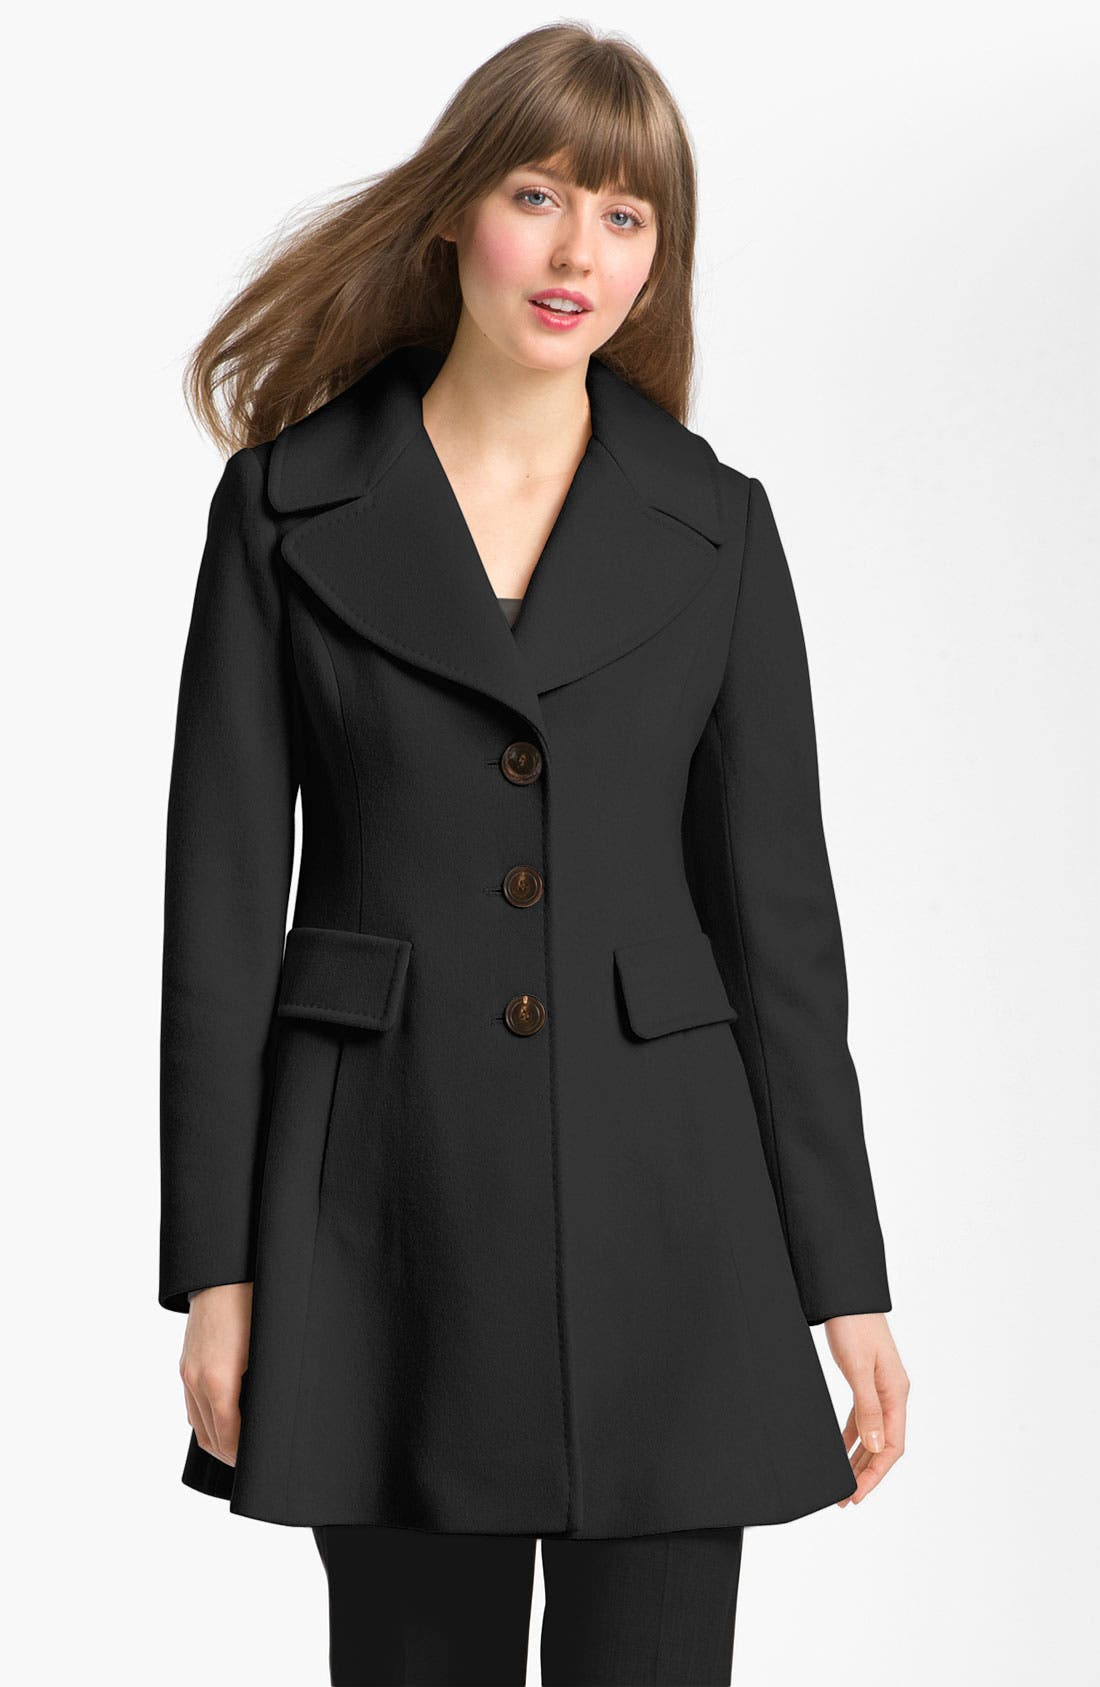 Main Image - Fleurette Single Breasted Wool Coat